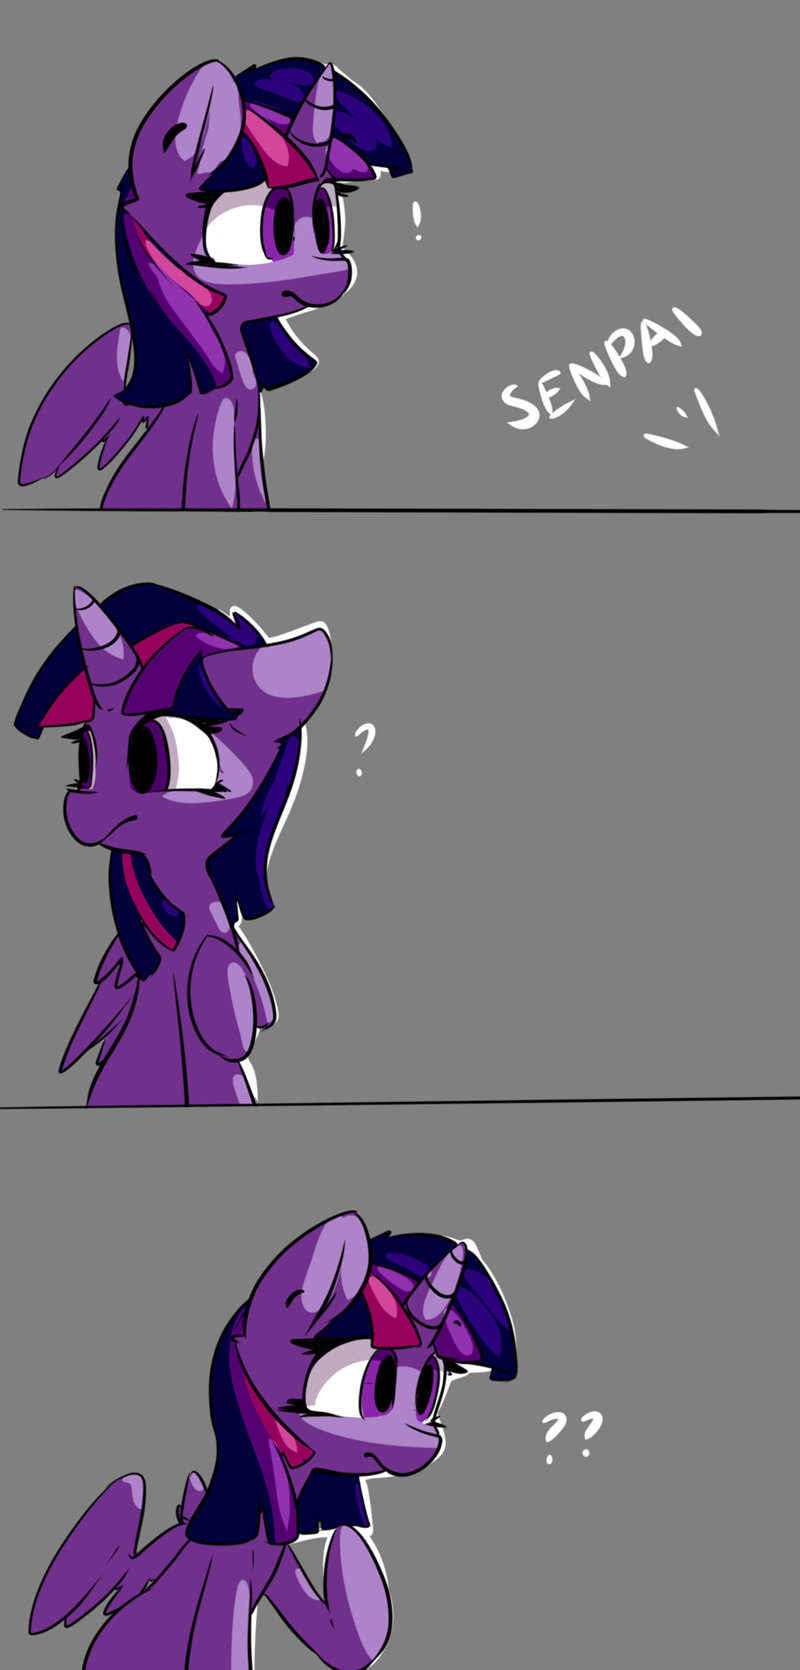 opinion twilight sparkle aestaslux comic senpai bloodatius - 9059391744